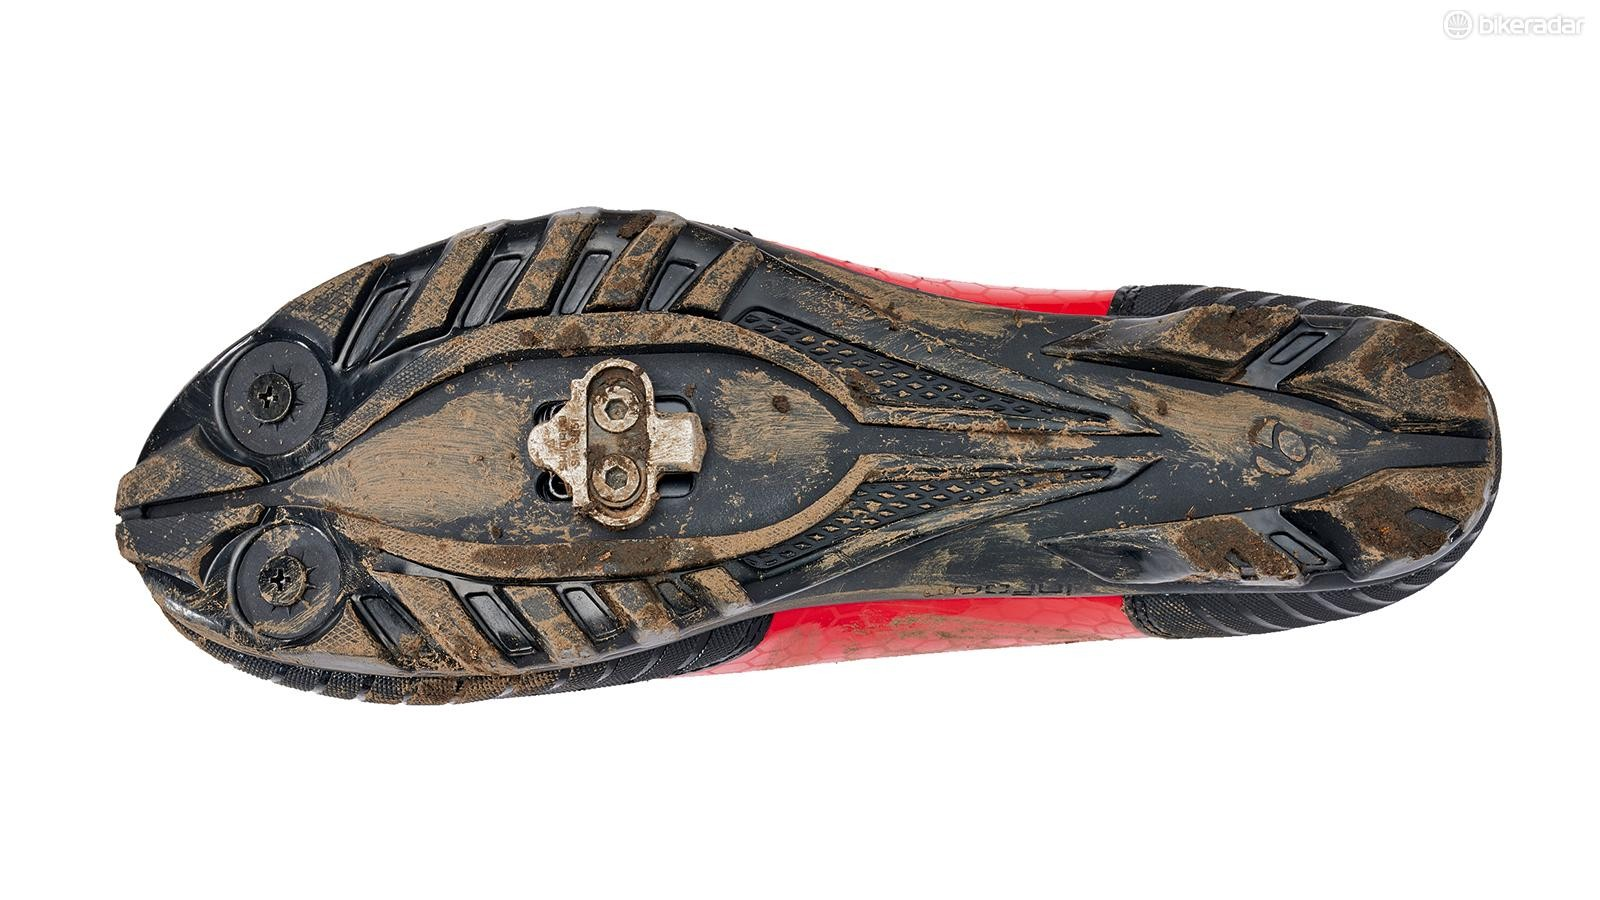 The nylon composite sole has a 6/10 on Bontrager's stiffness index